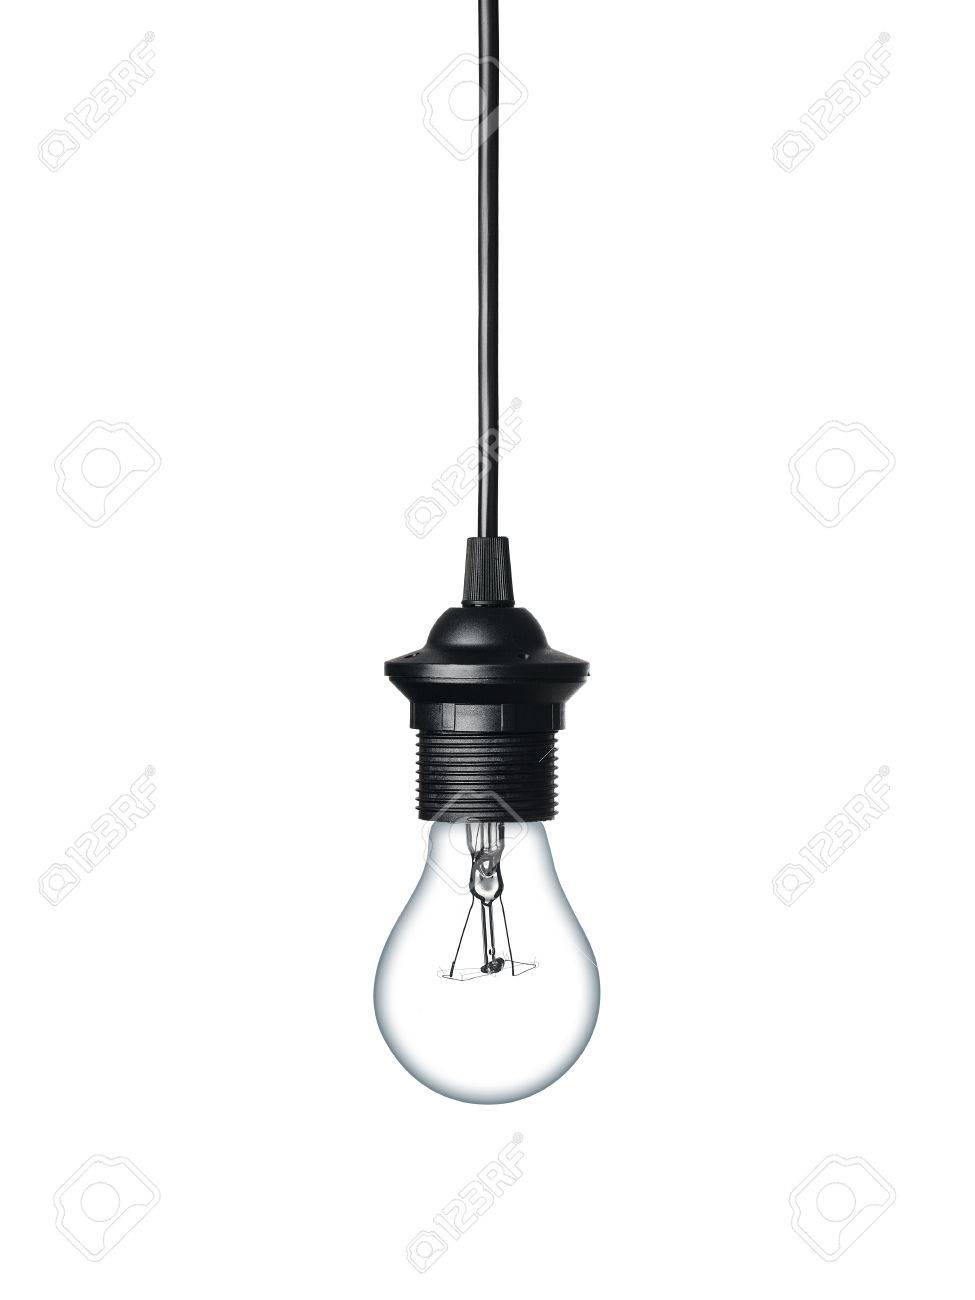 Close up of a light bulb hanging on the cable isolated on white background - 45361111